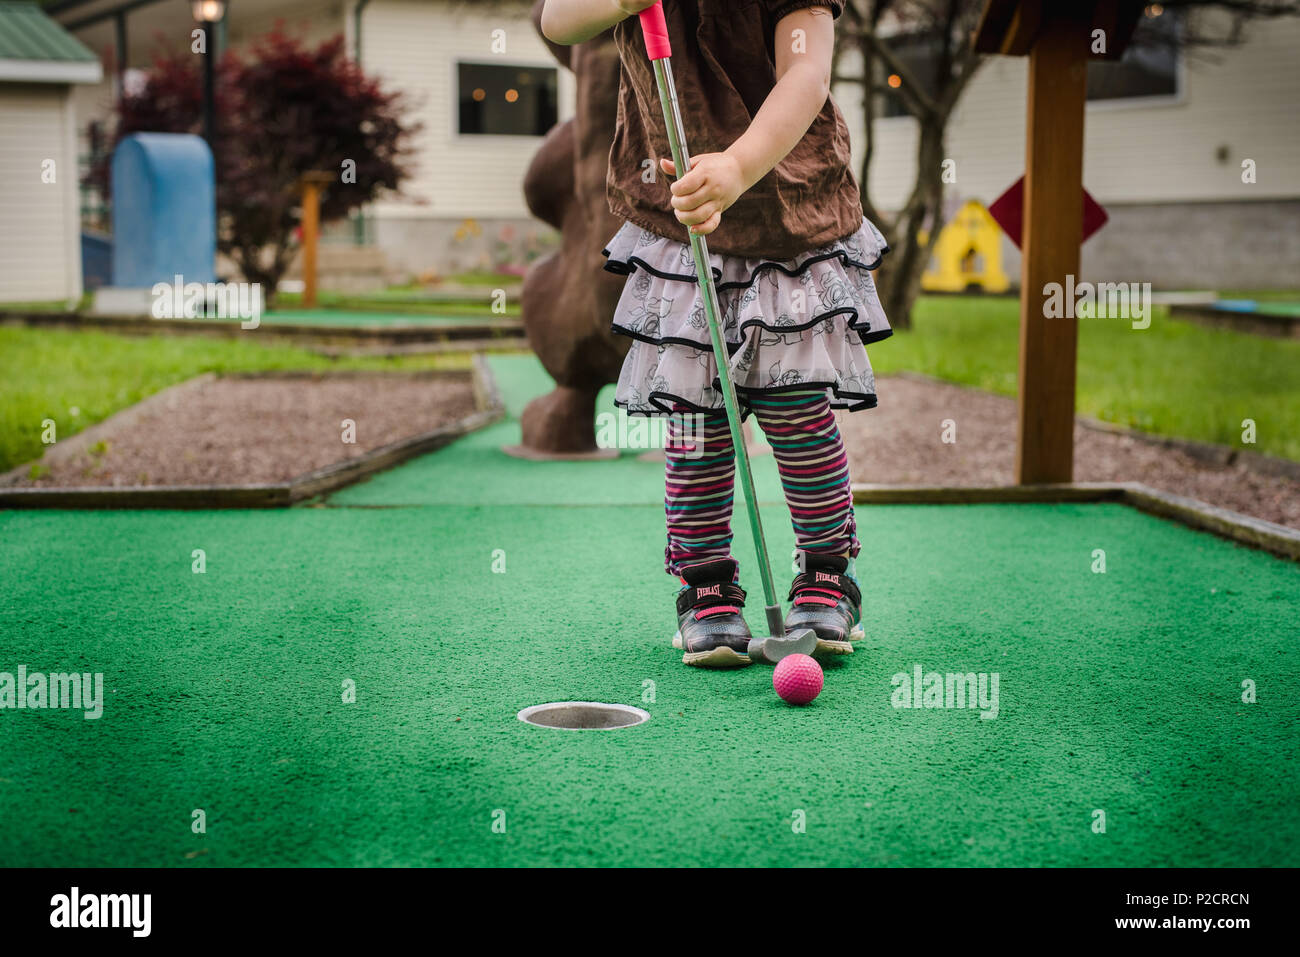 A young girl plays miniature golf in warmer weather. - Stock Image